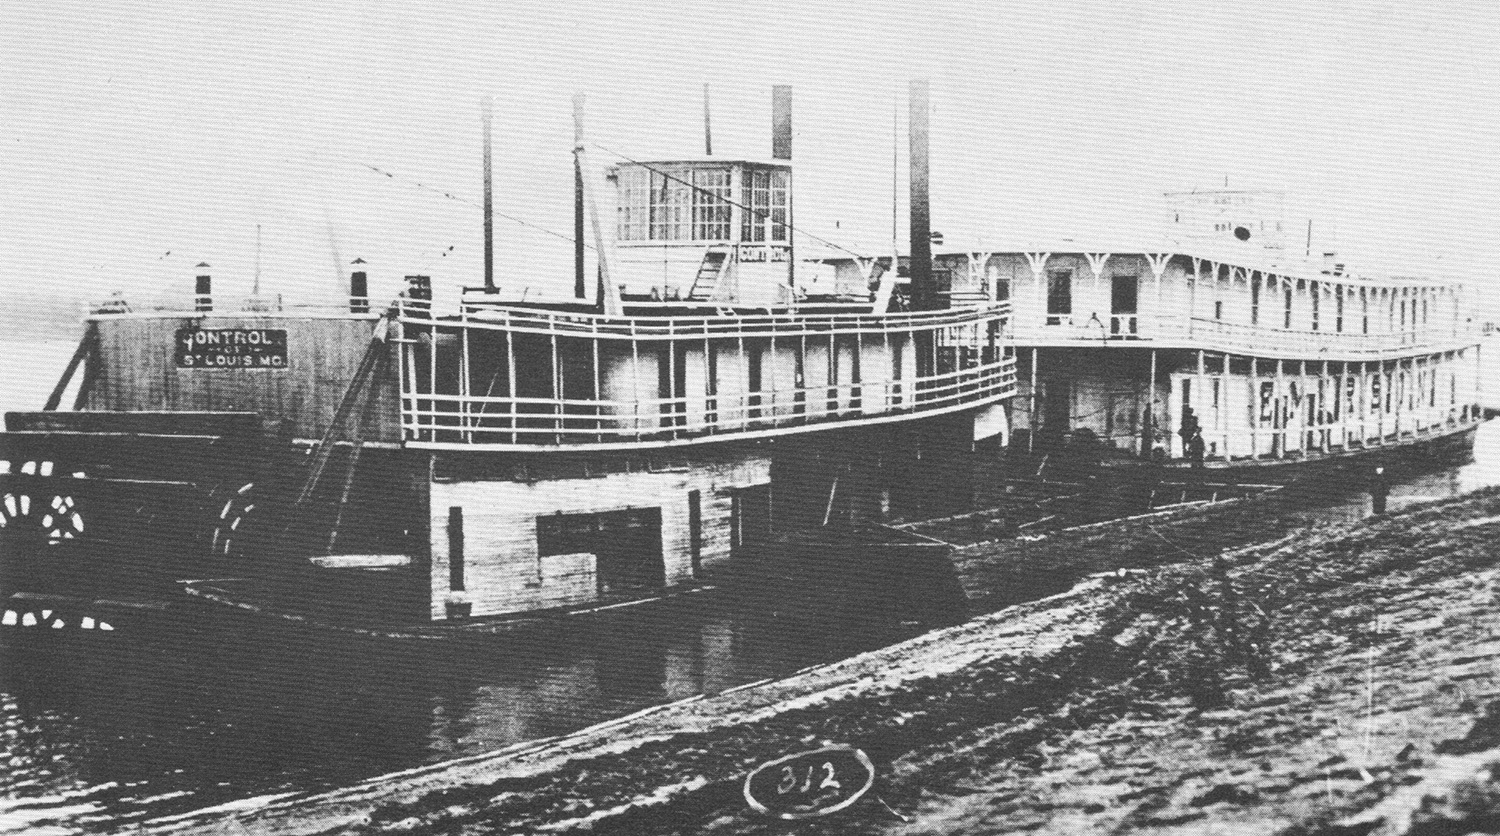 The towboat Control (1904-1921) with the Goldenrod Showboat. (Keith Norrington collection)